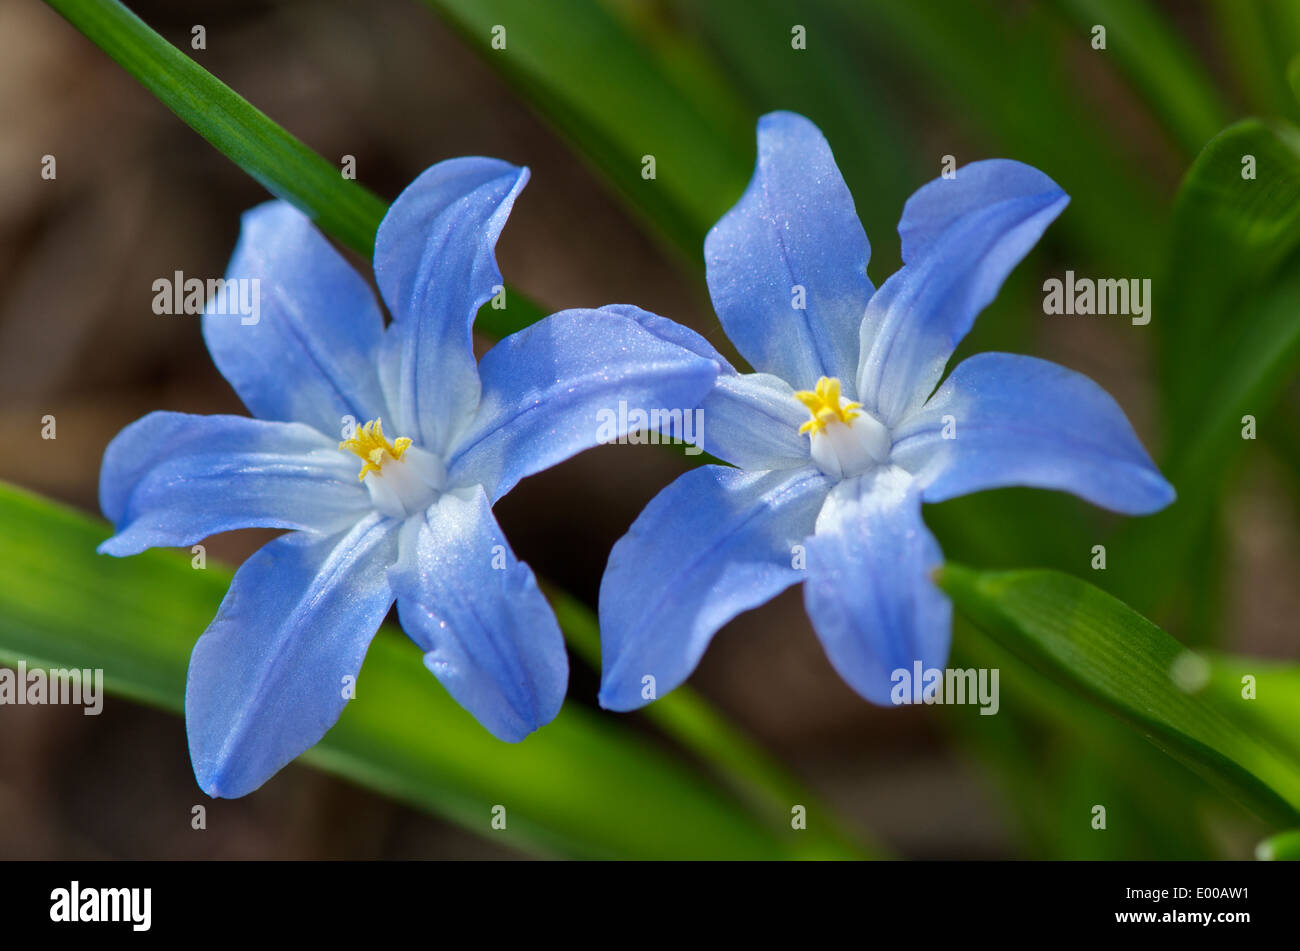 Chionodoxa luciliae or glory of the snow tiny purple blue flowers chionodoxa luciliae or glory of the snow tiny purple blue flowers appearing in late winter and early spring dhlflorist Choice Image